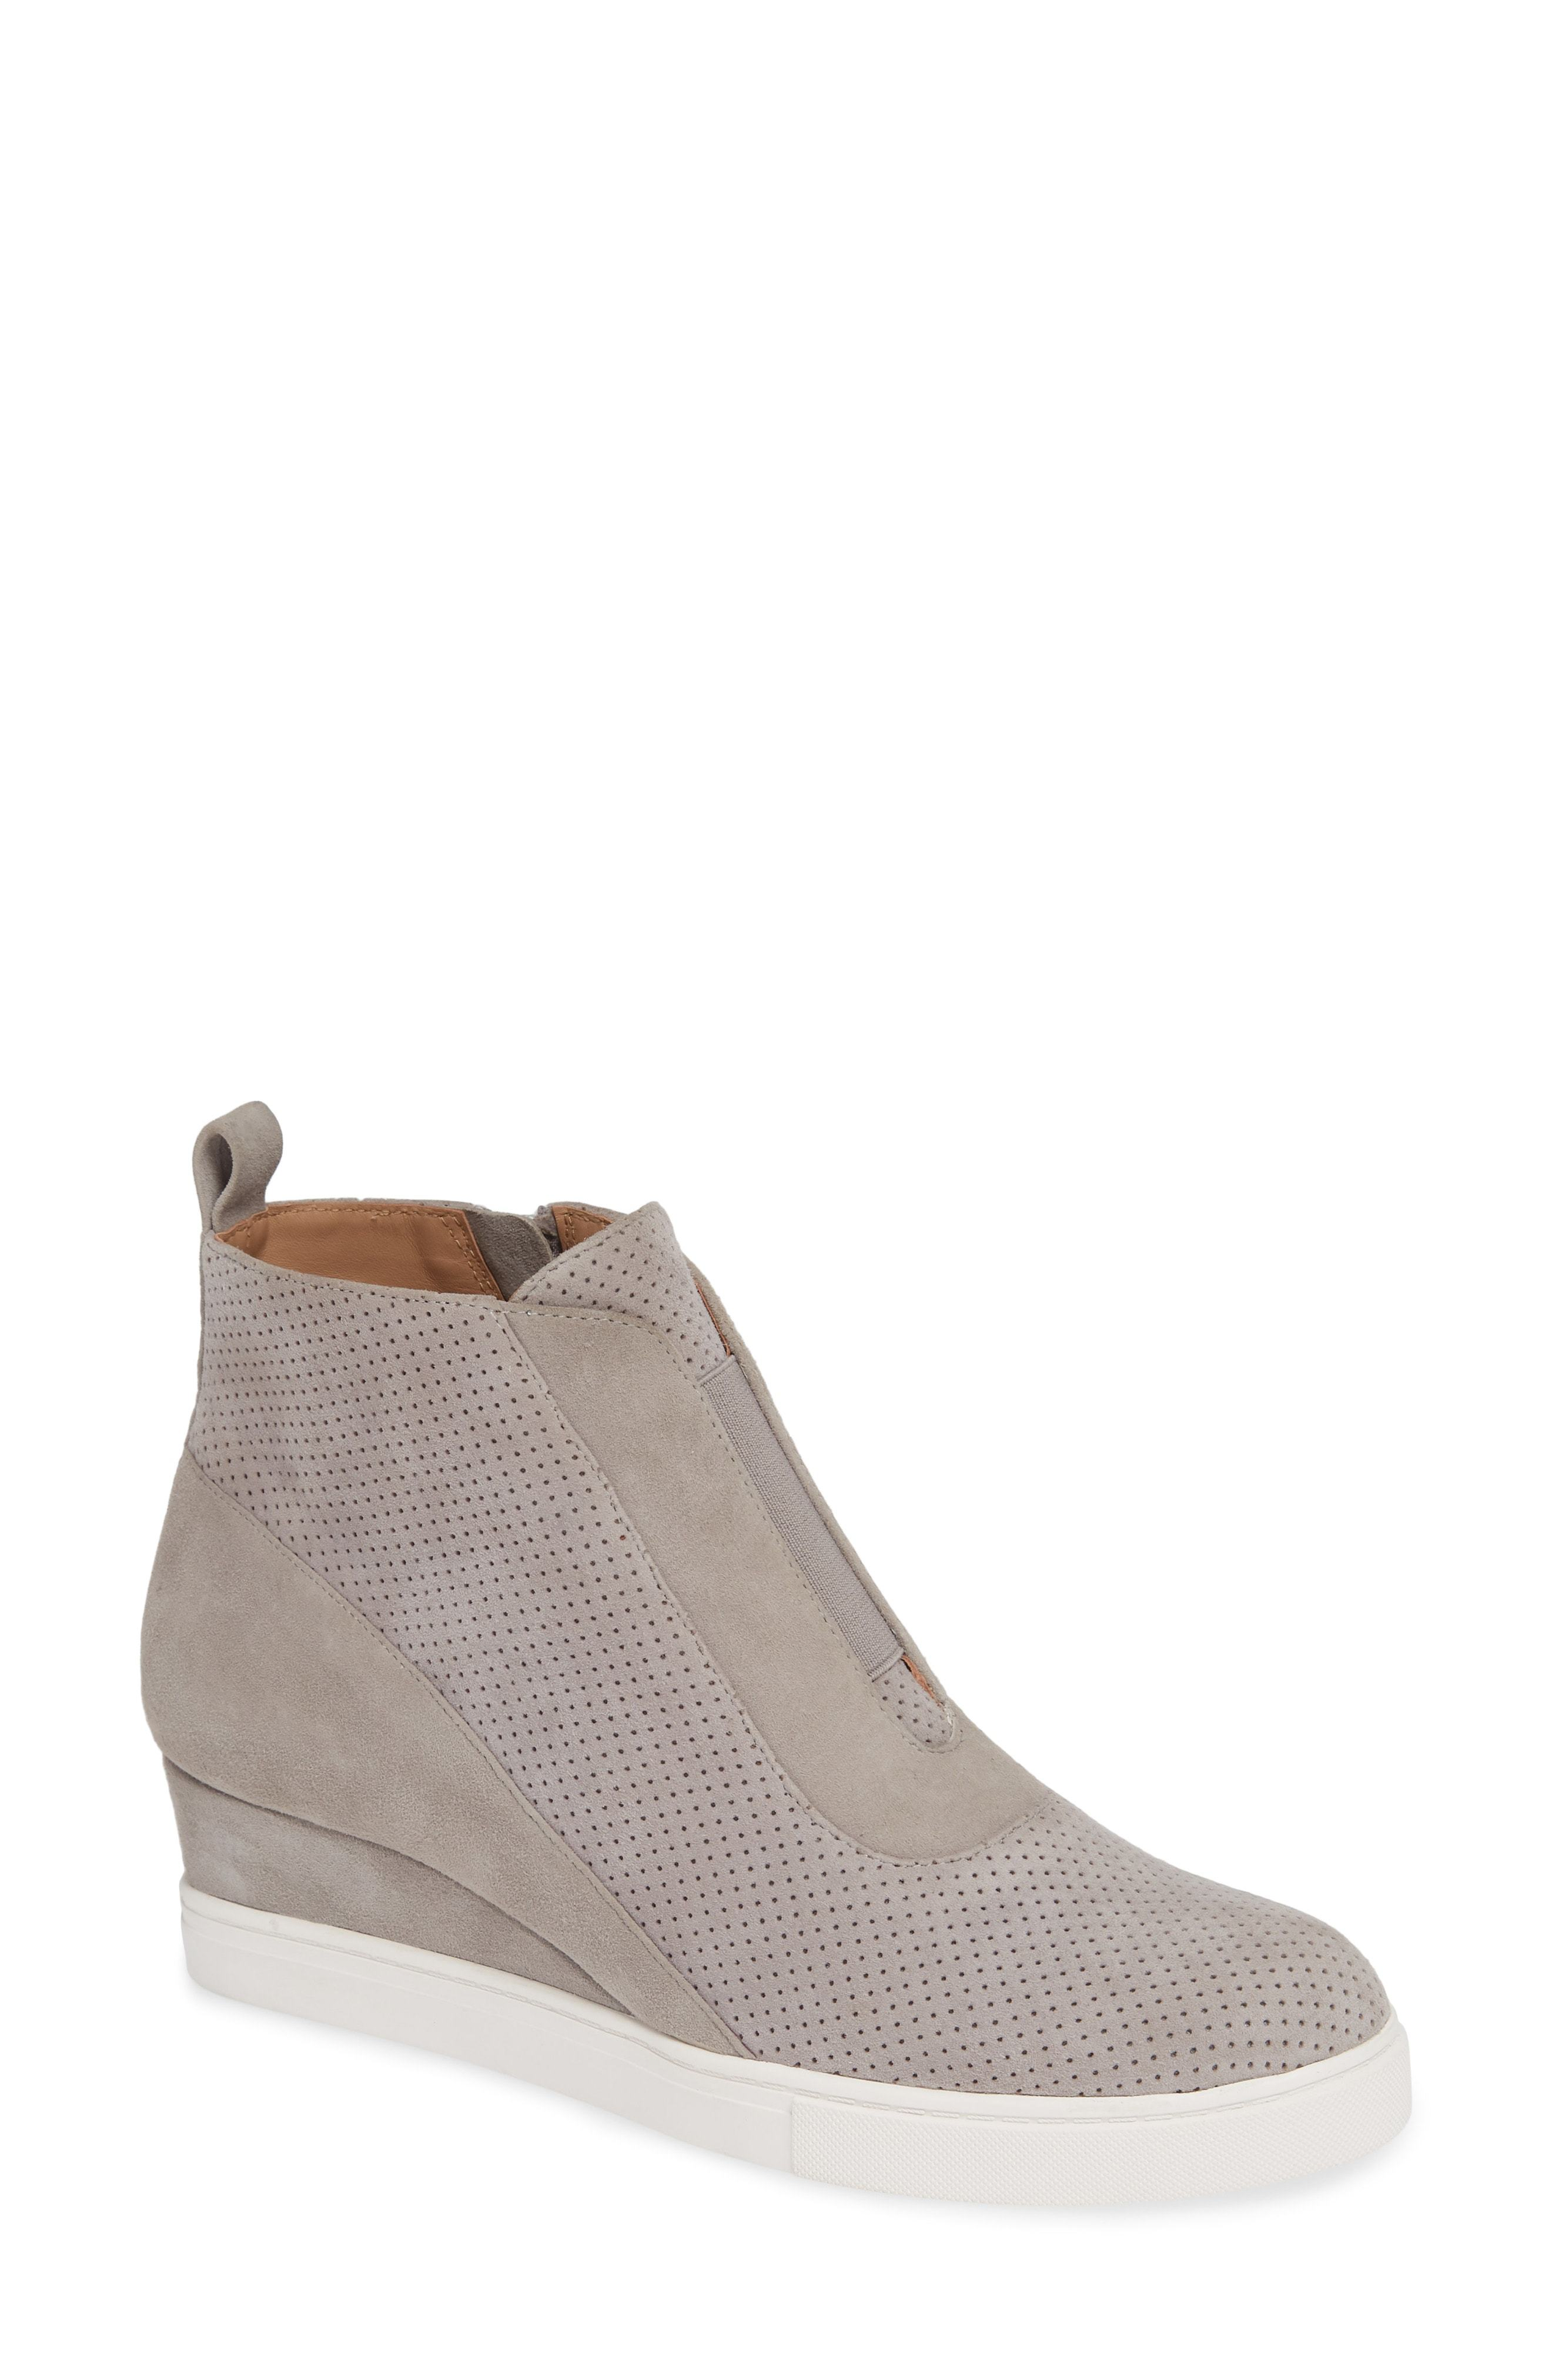 7096a6bbf190 ... Linea Paolo Anna Wedge Sneaker